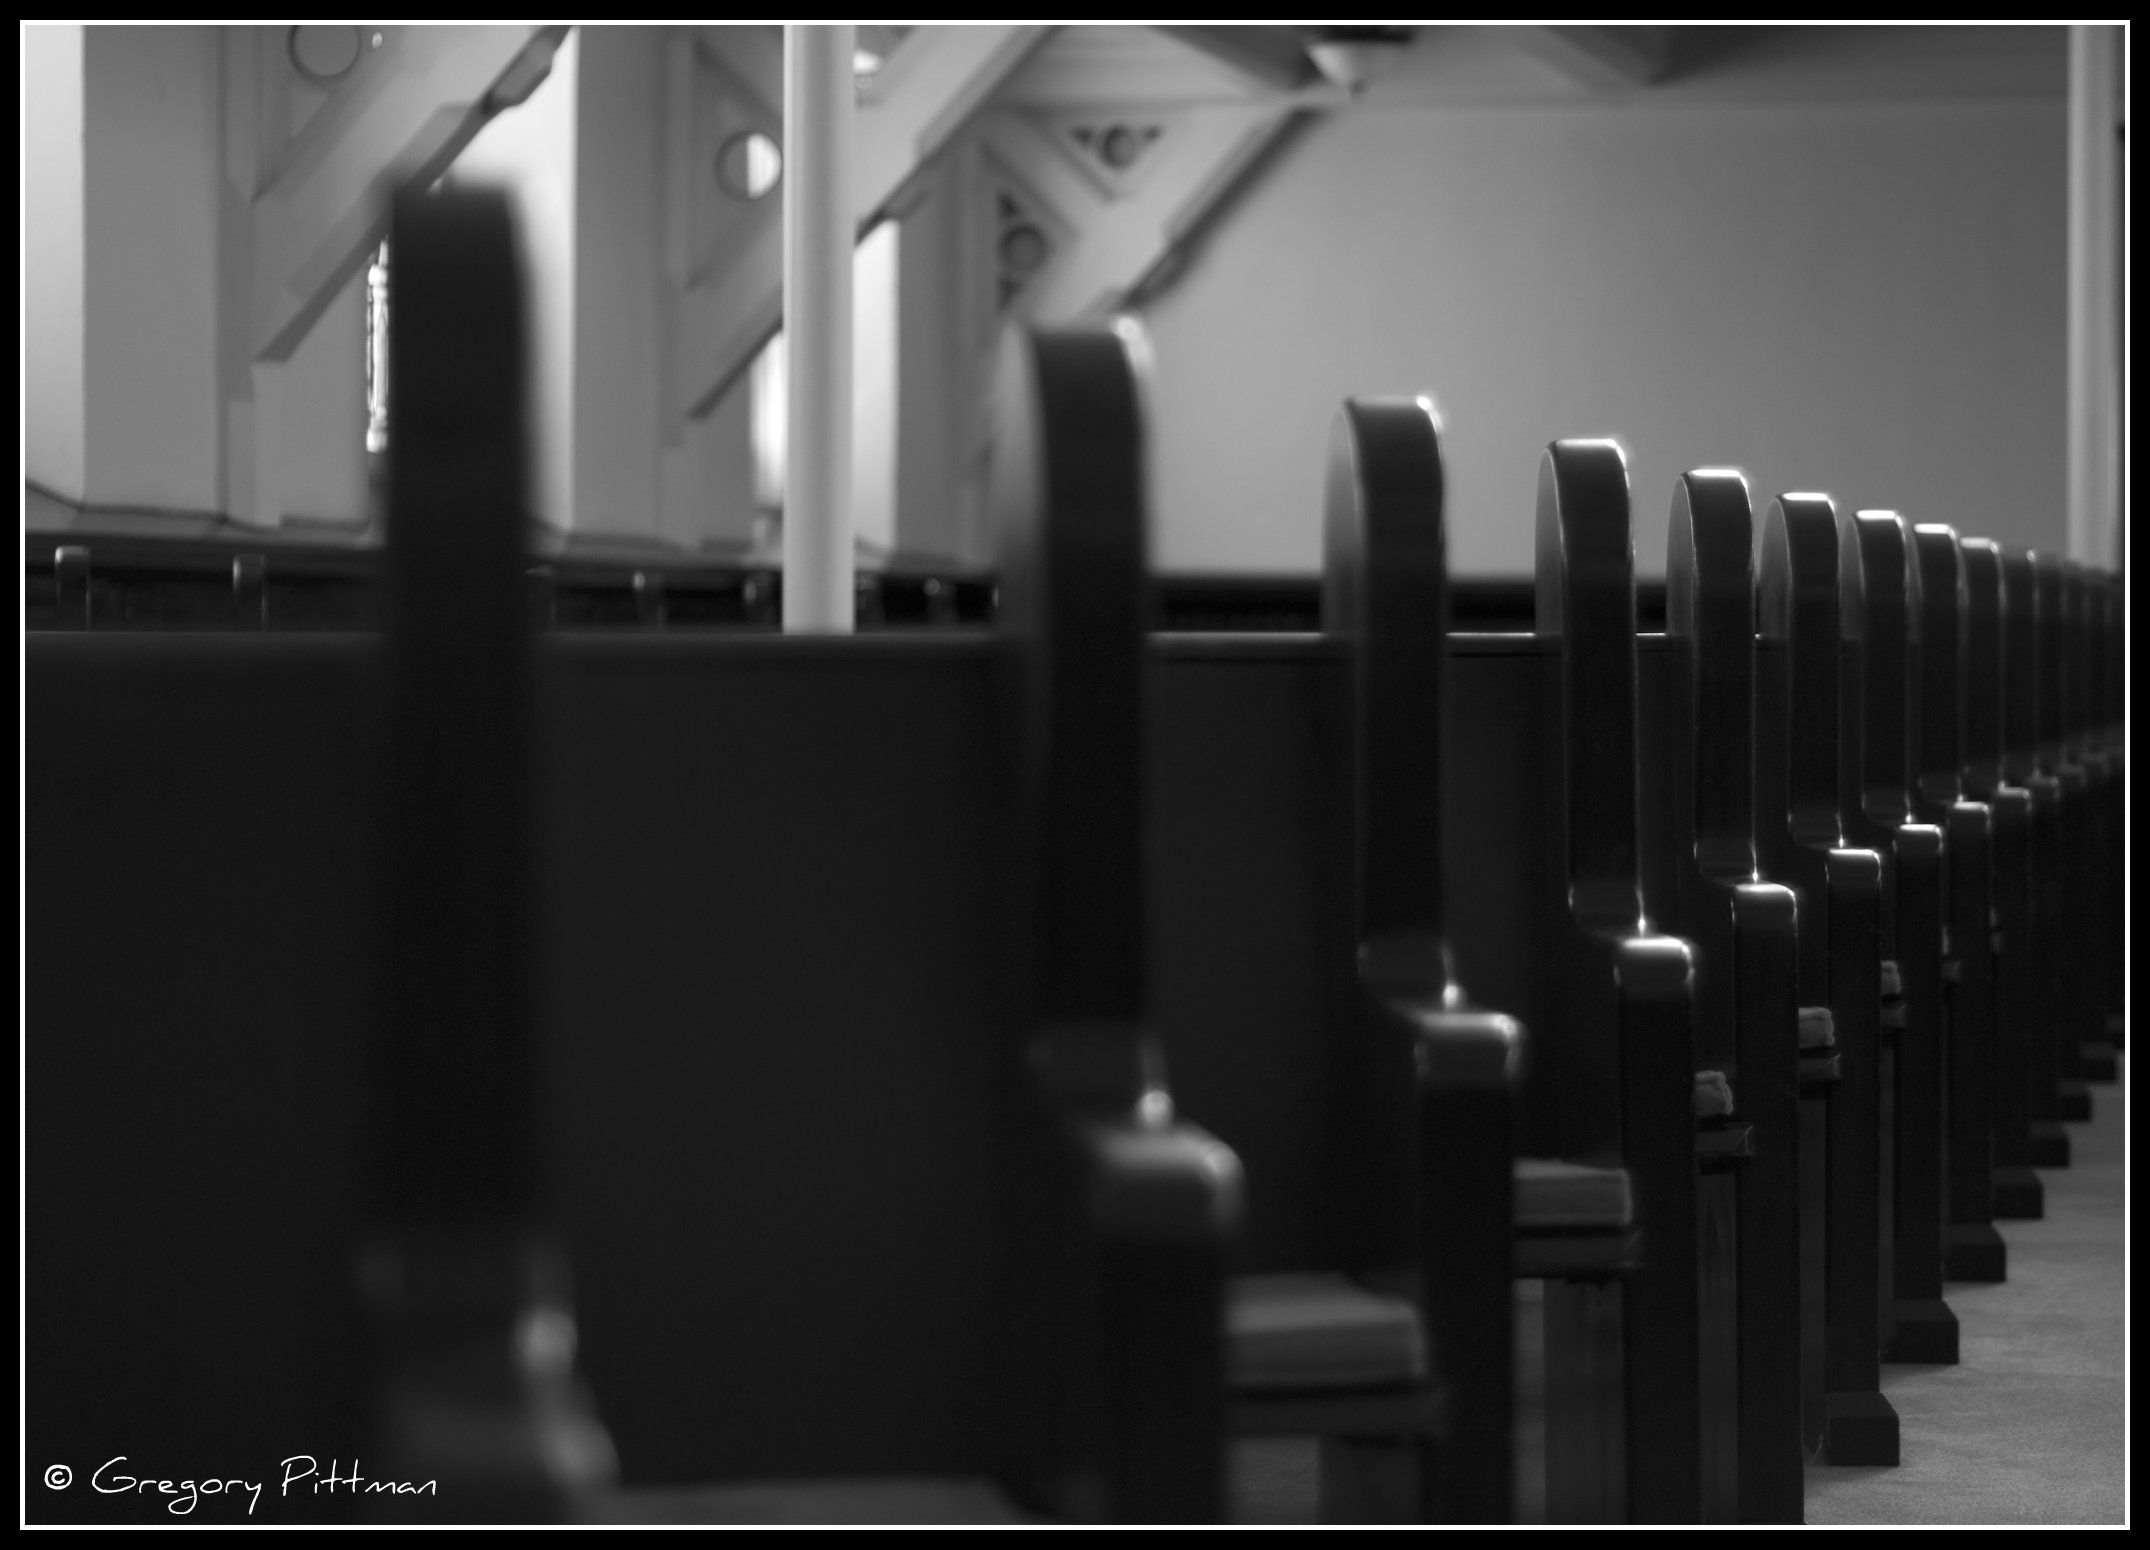 Angular rows of pews in a church